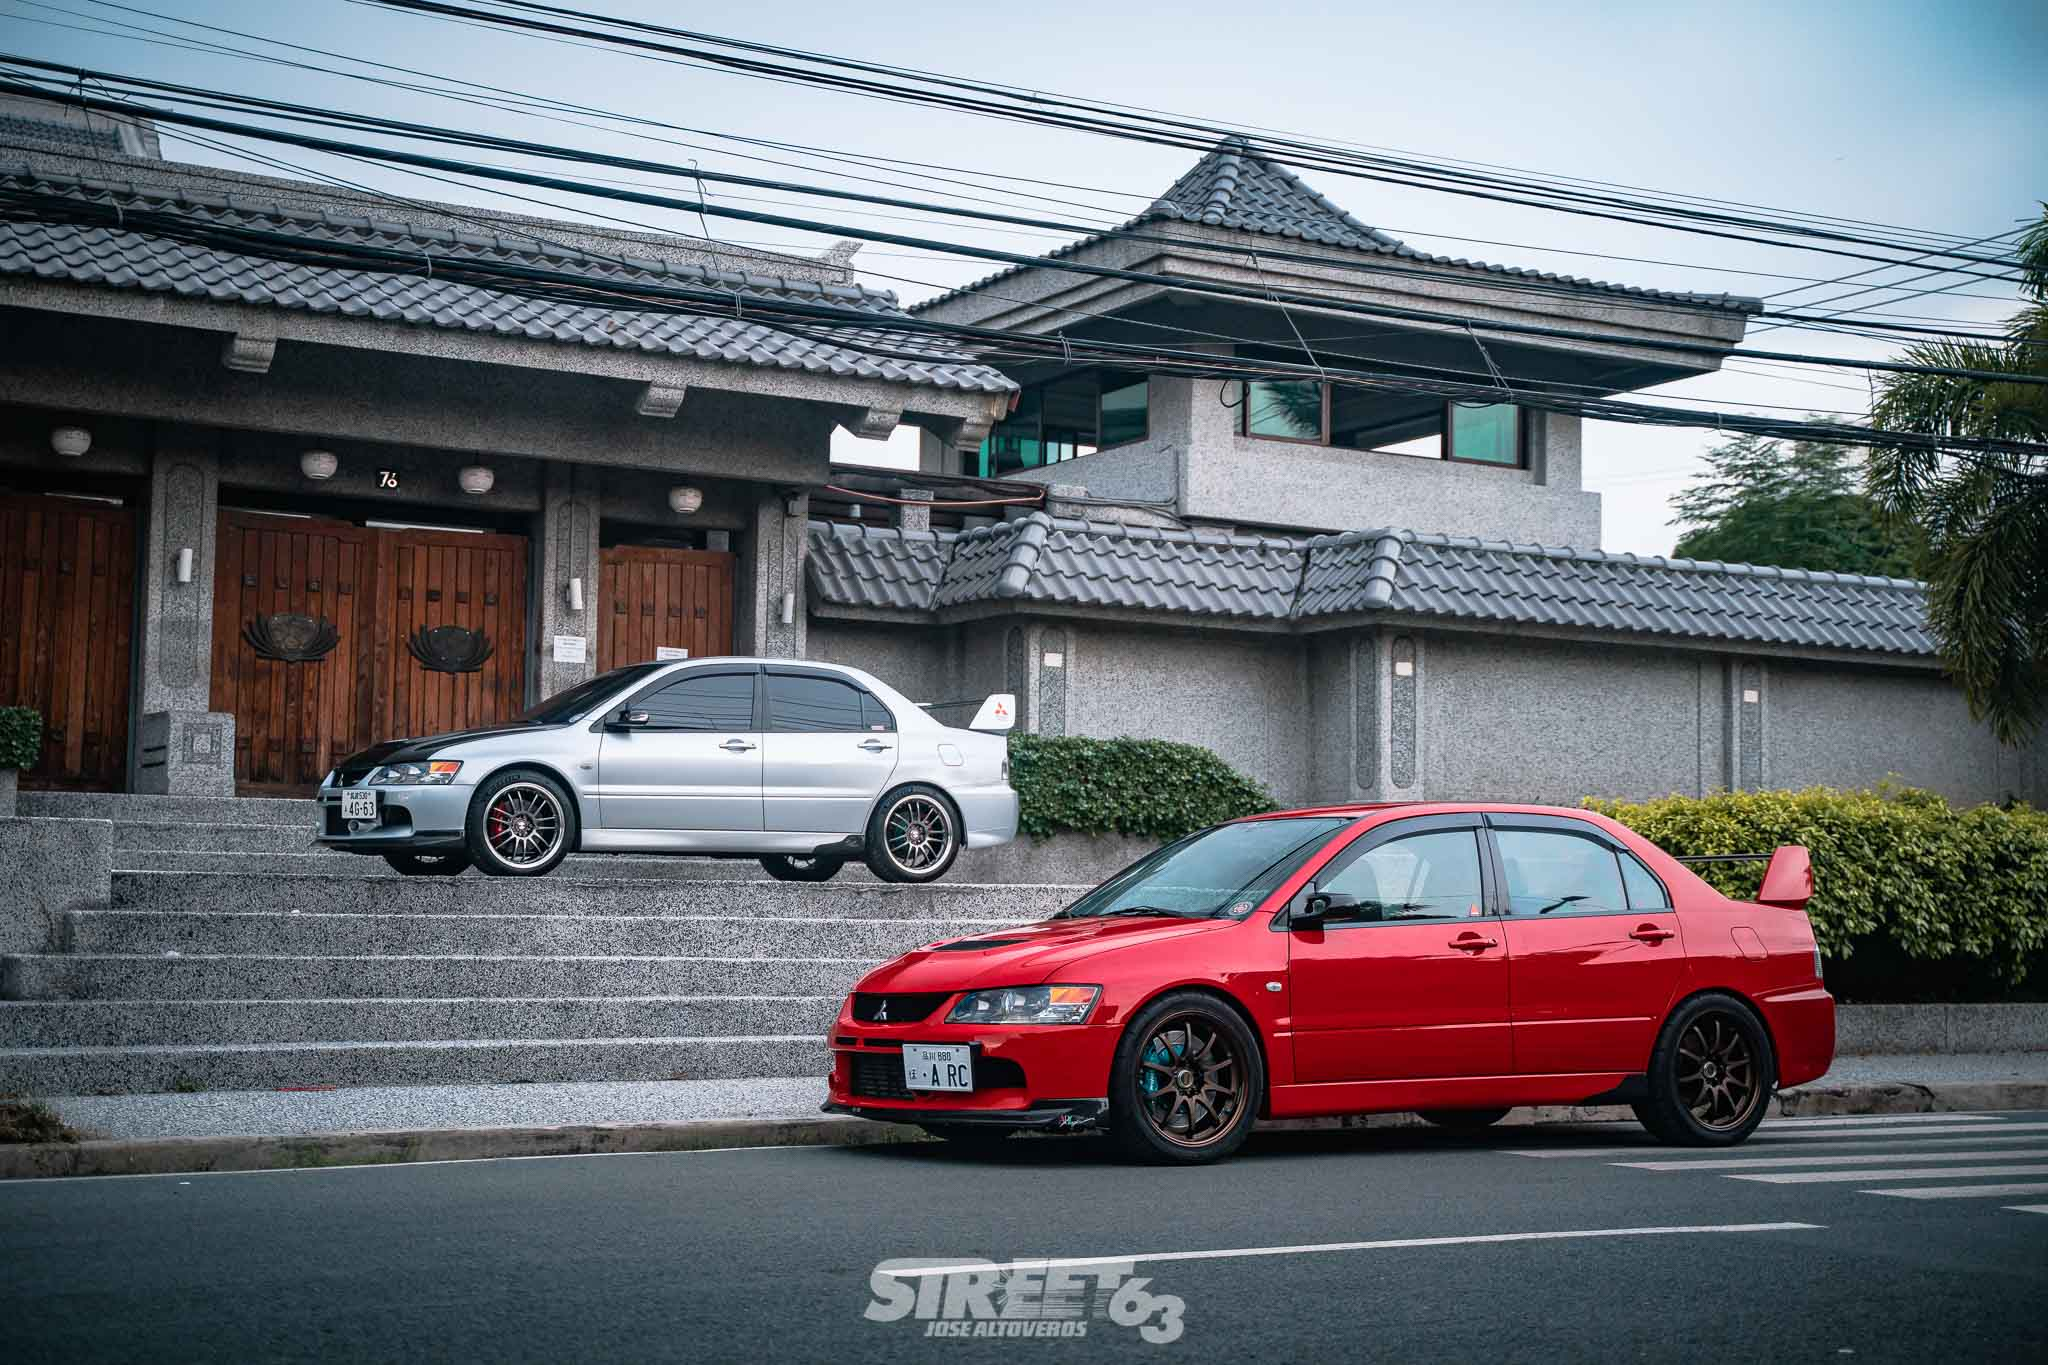 Diamond Star Generations: A Father and Son Evo Tandem